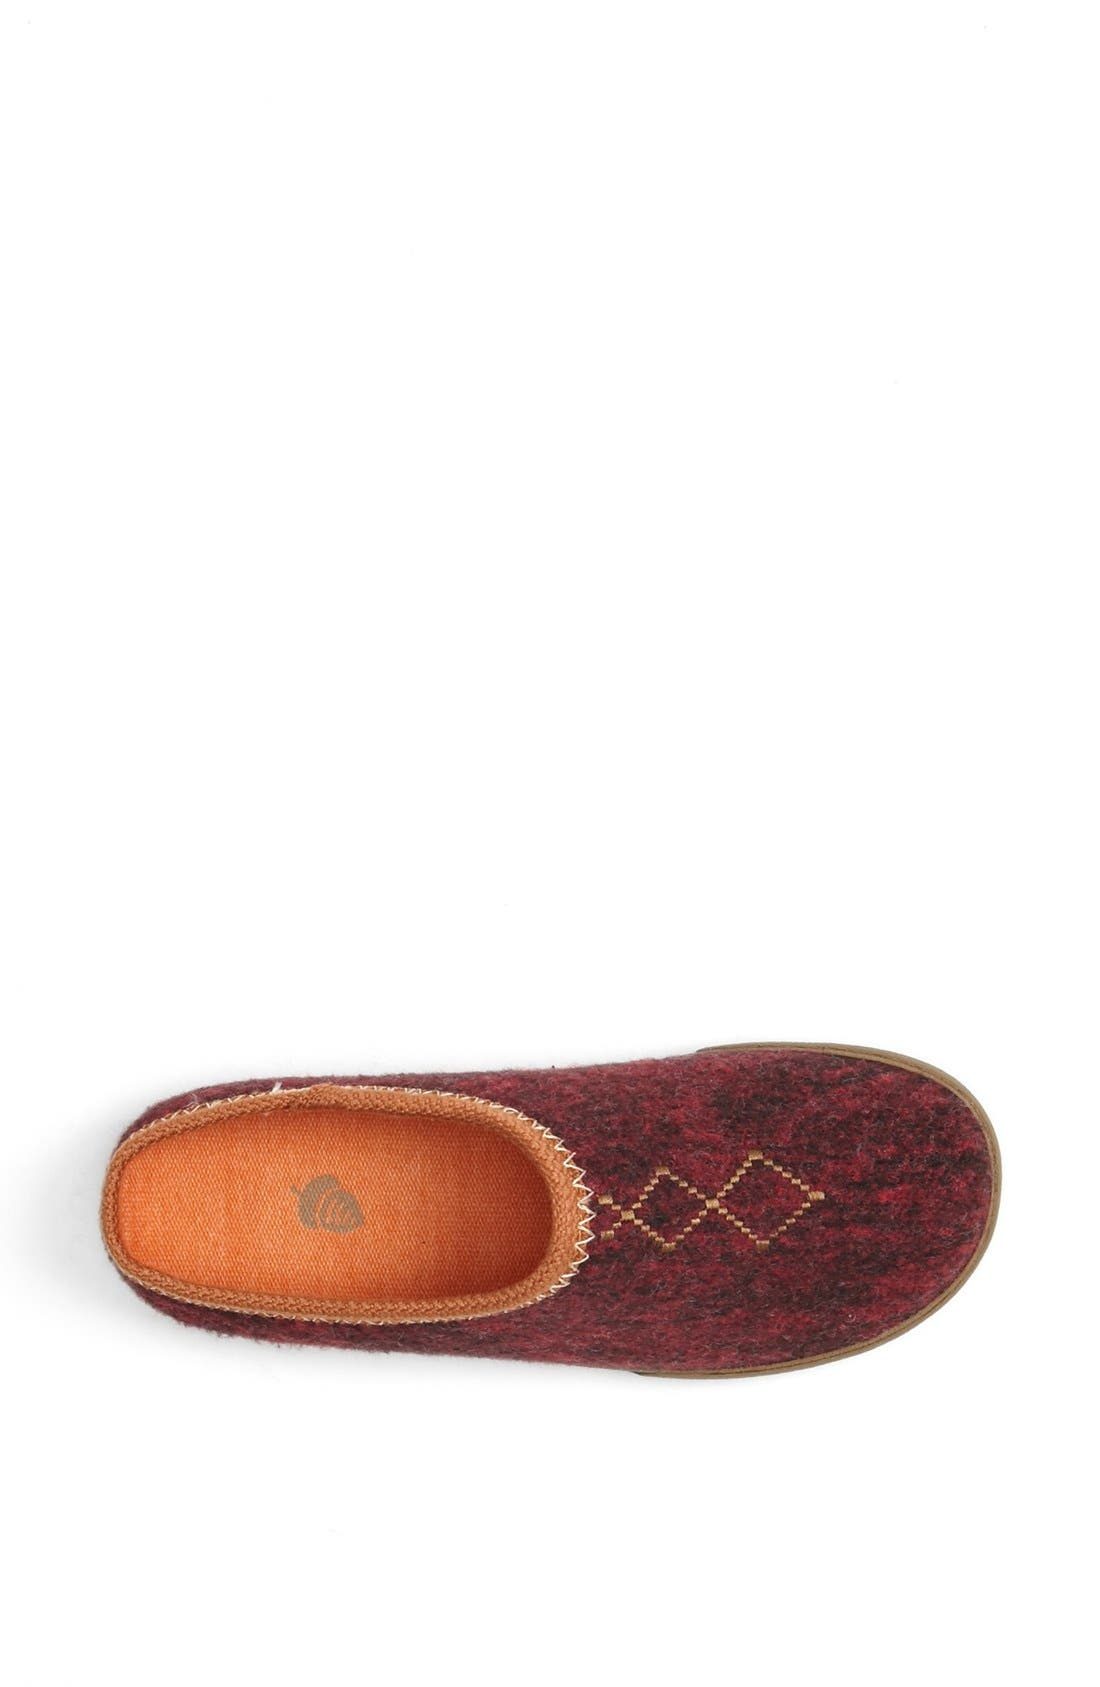 Alternate Image 3  - Acorn 'Crossroads' Slipper